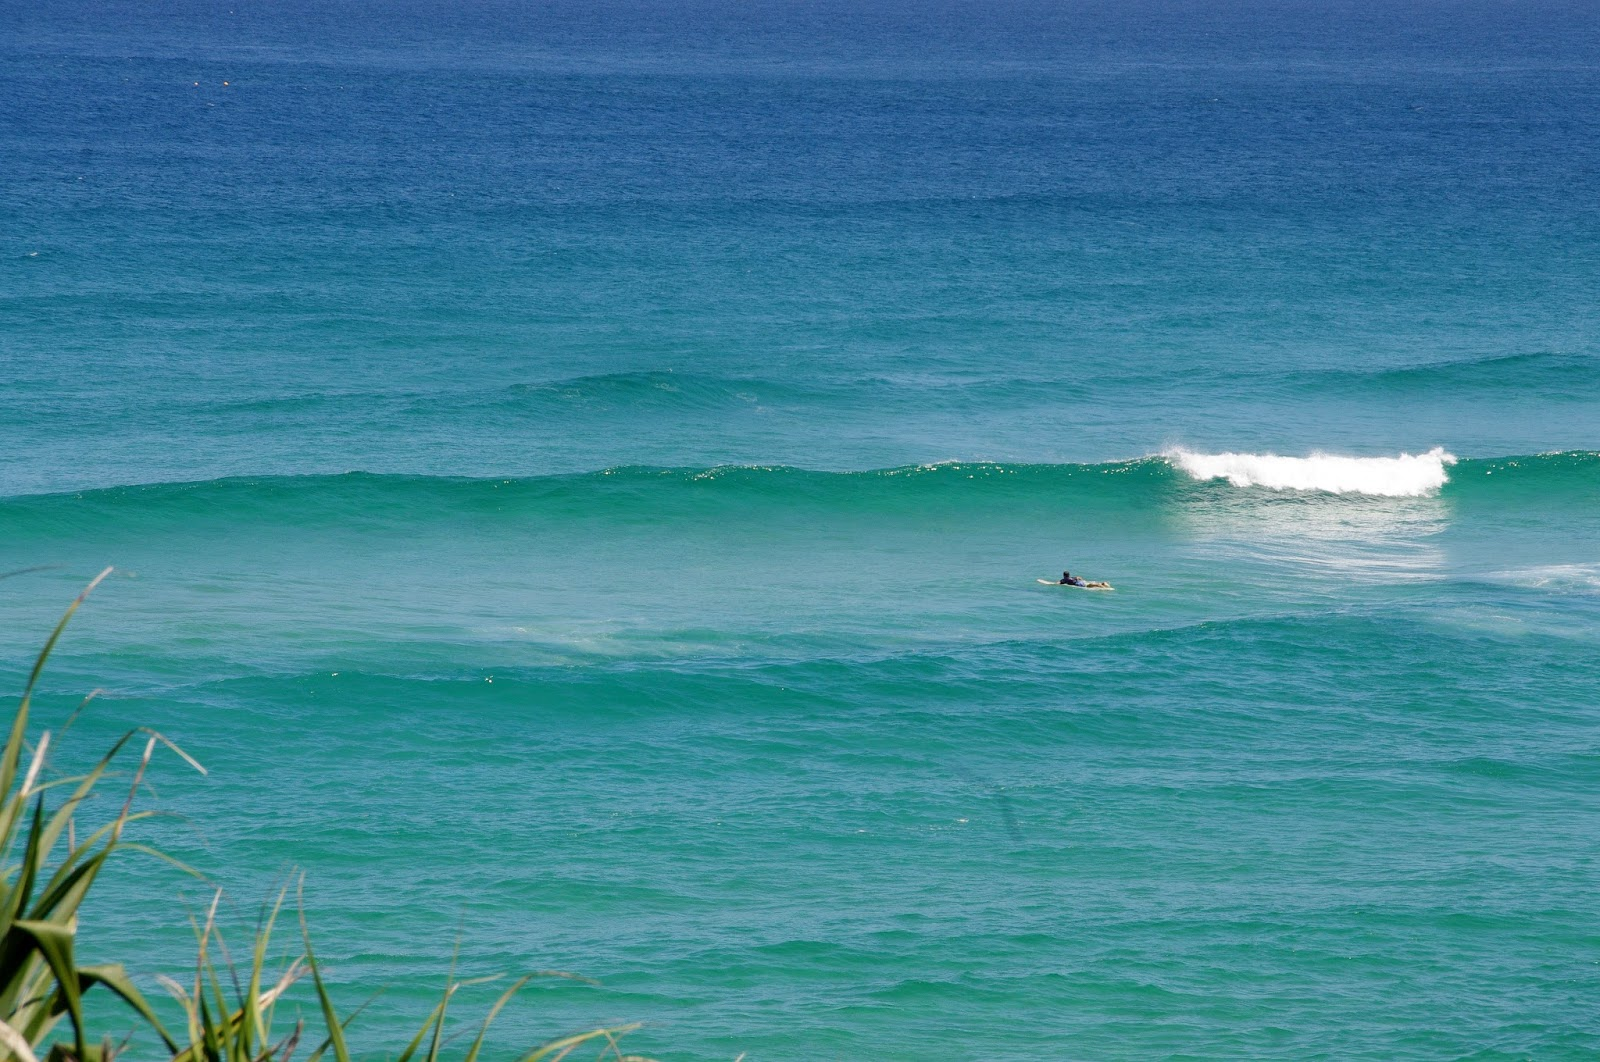 Surfer and Waves at Main Beach Stradbroke Island